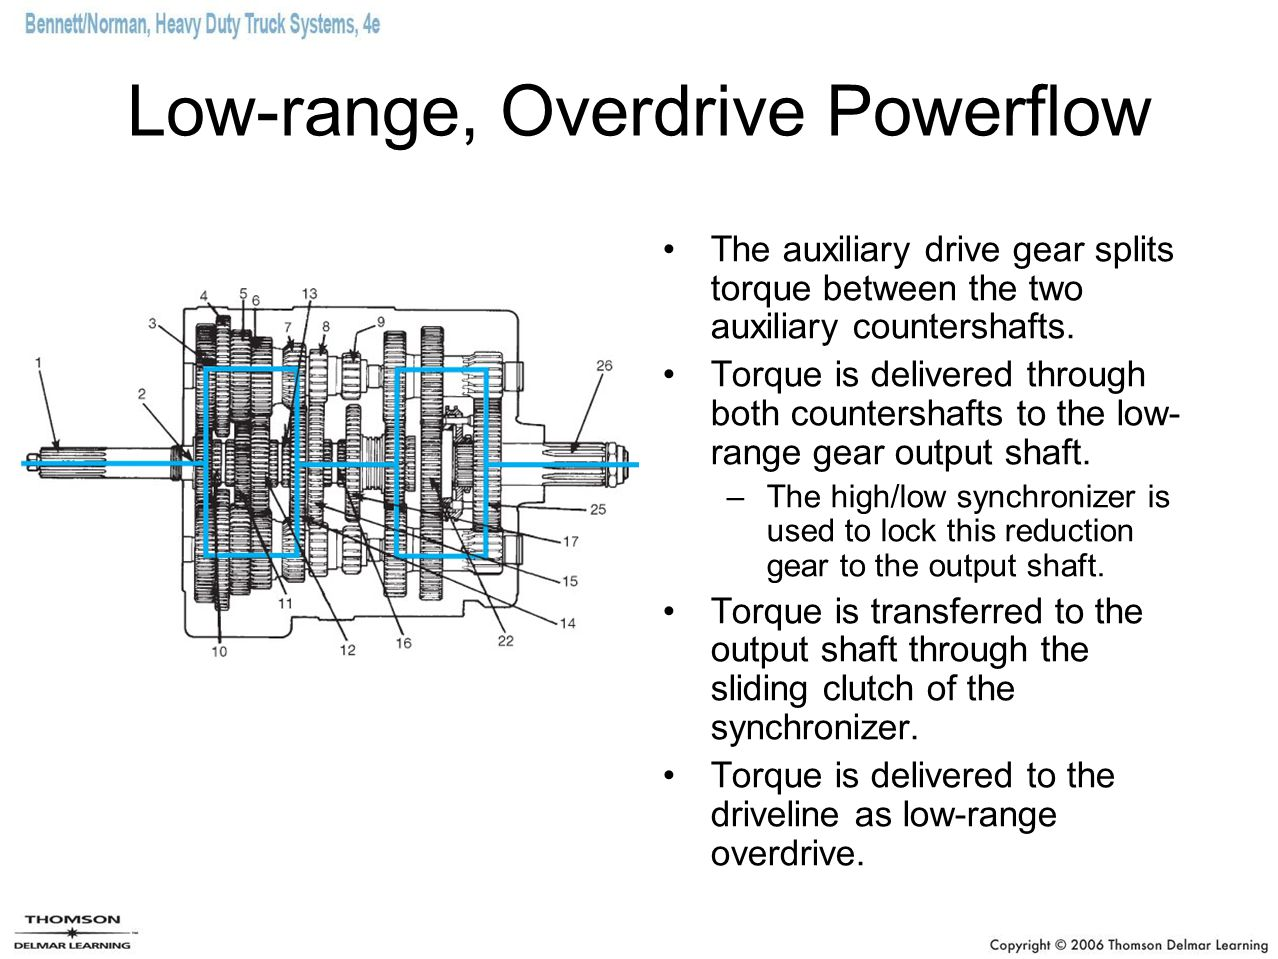 Low-range, Overdrive Powerflow